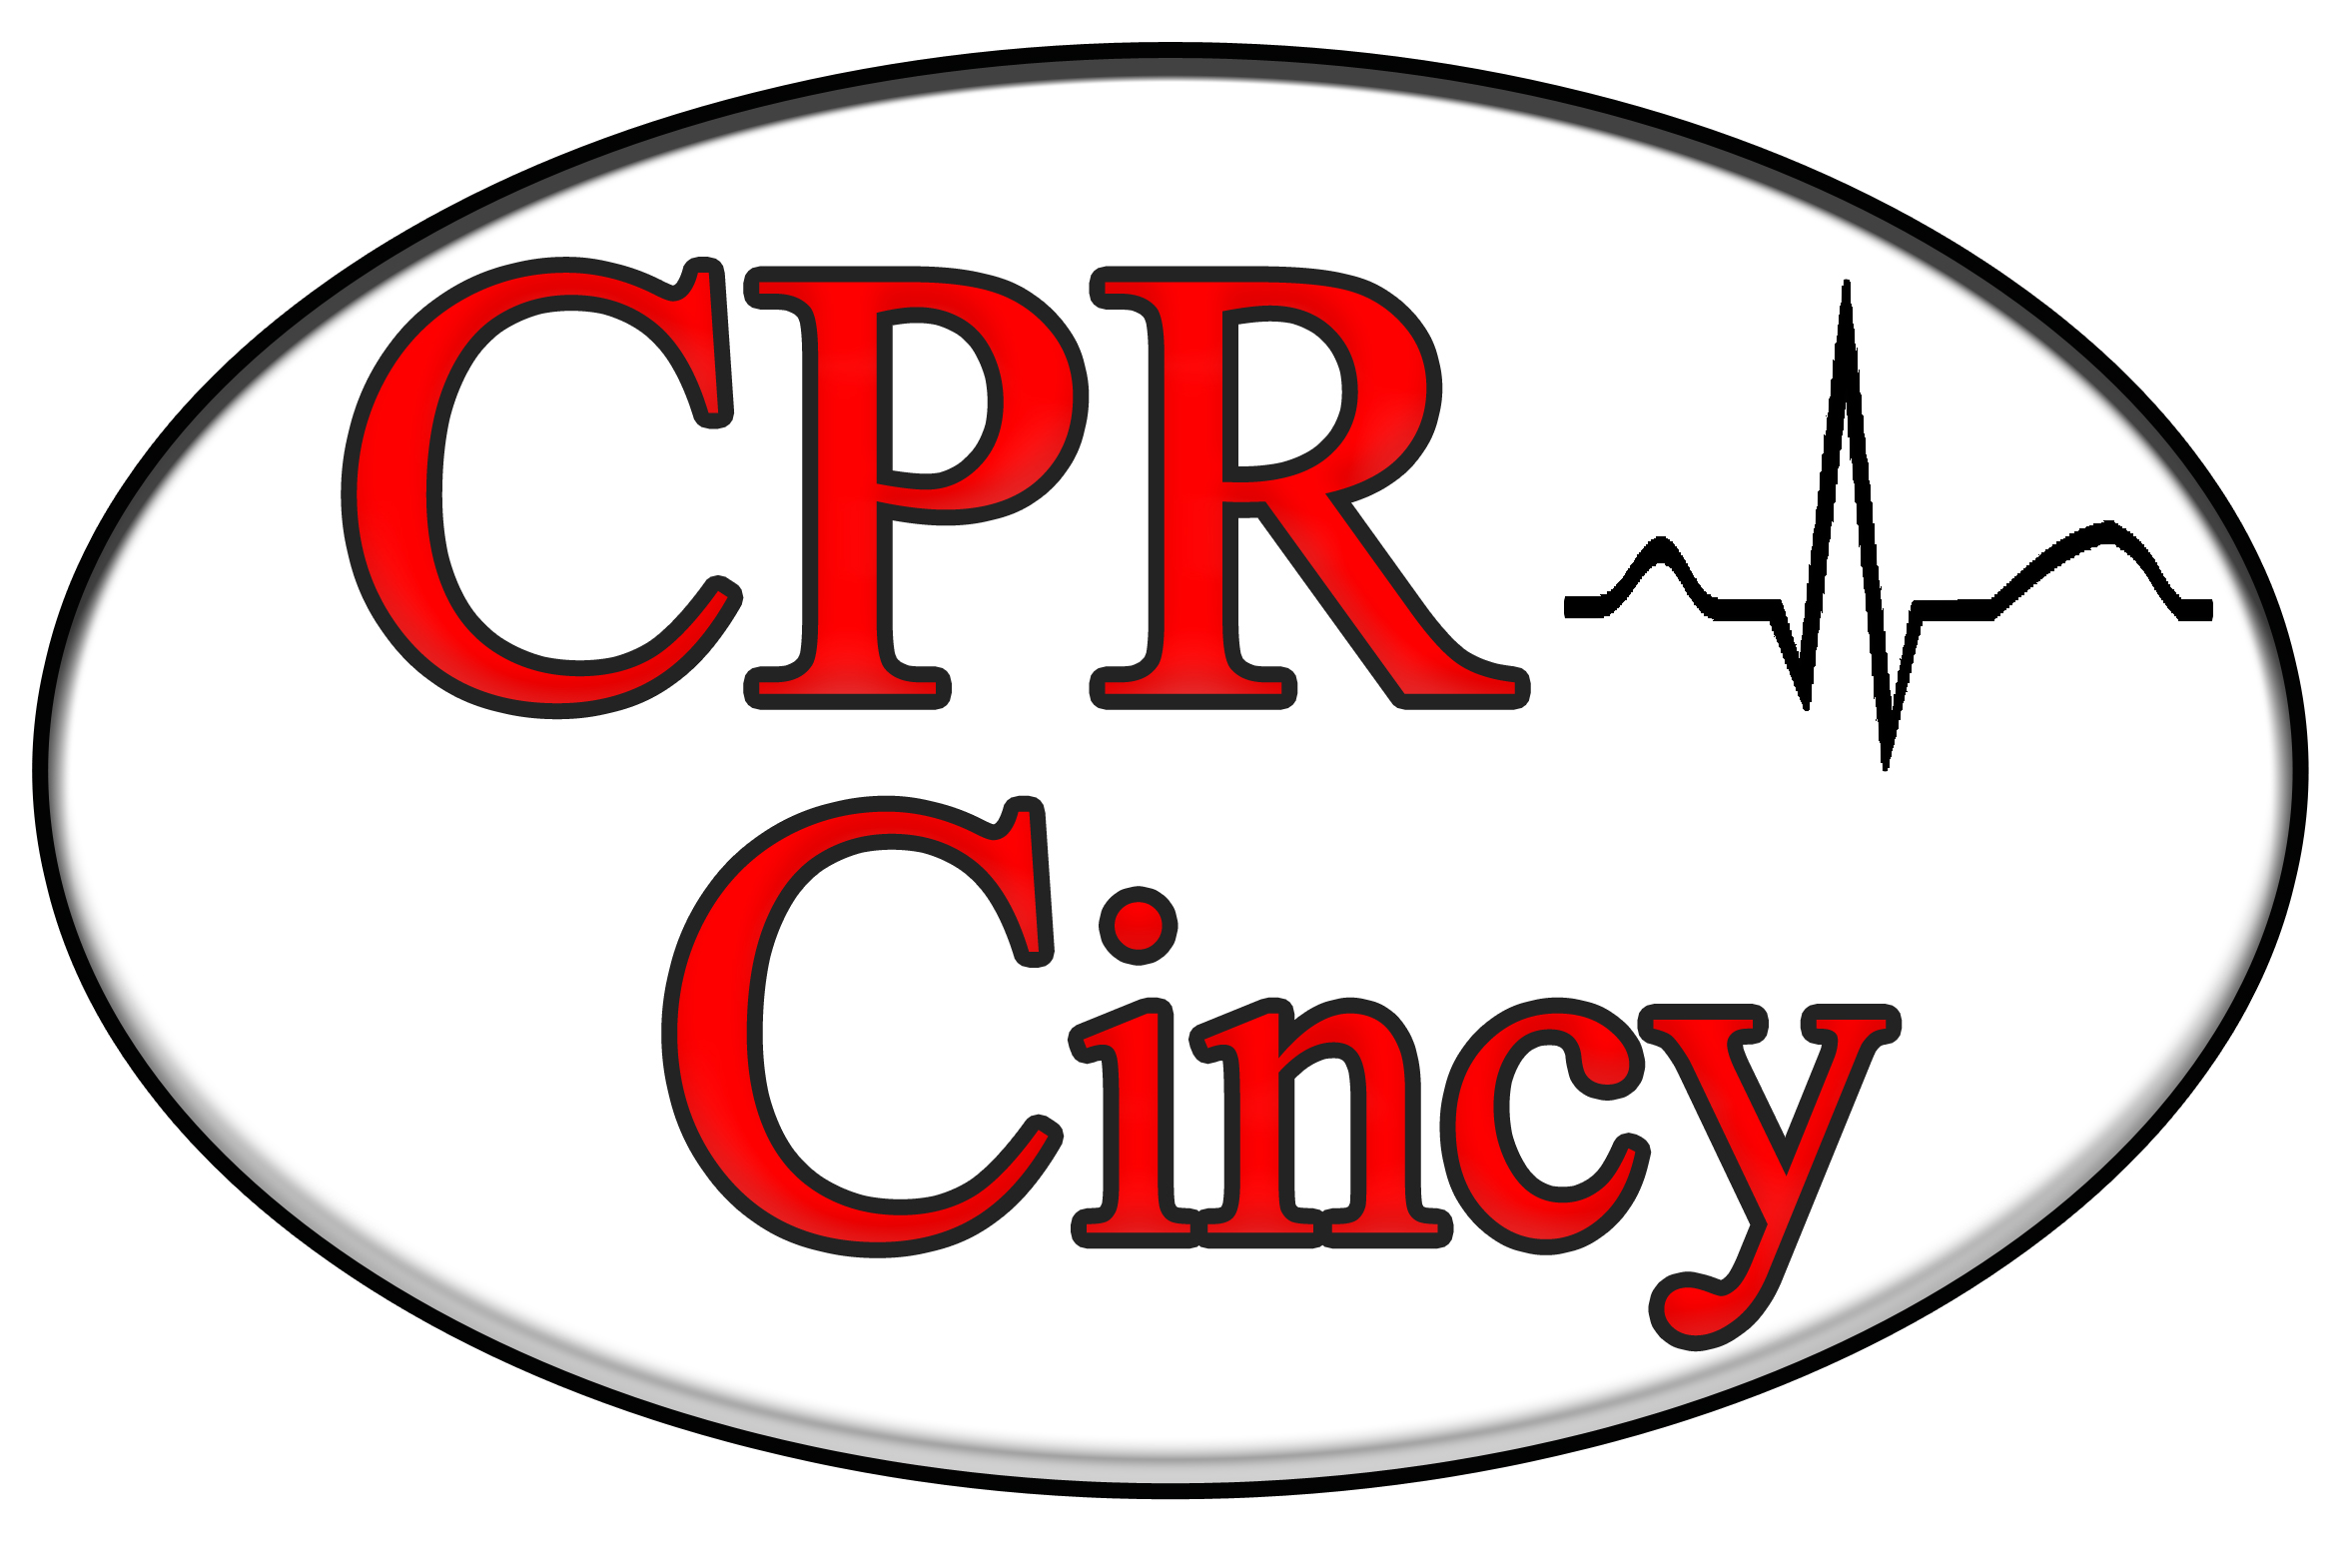 About us cpr cincinnati 513 828 3488 cpr cincinnati is an american heart association training site classes are held in a conveniently located local cincinnati area see location aha courses xflitez Images